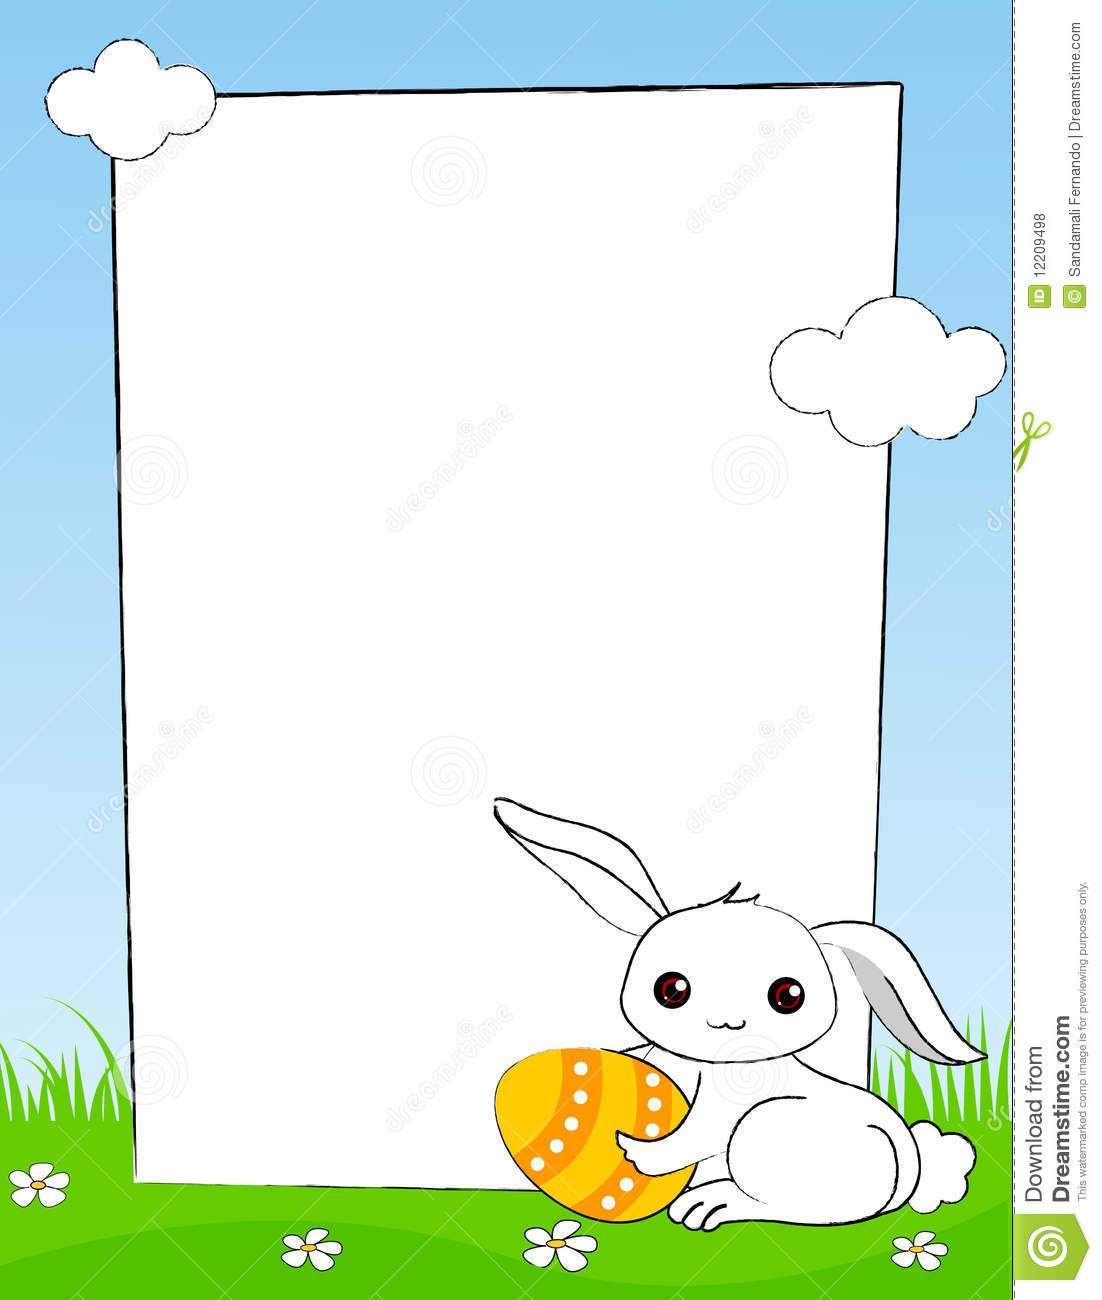 free clip art borders for easter - photo #11